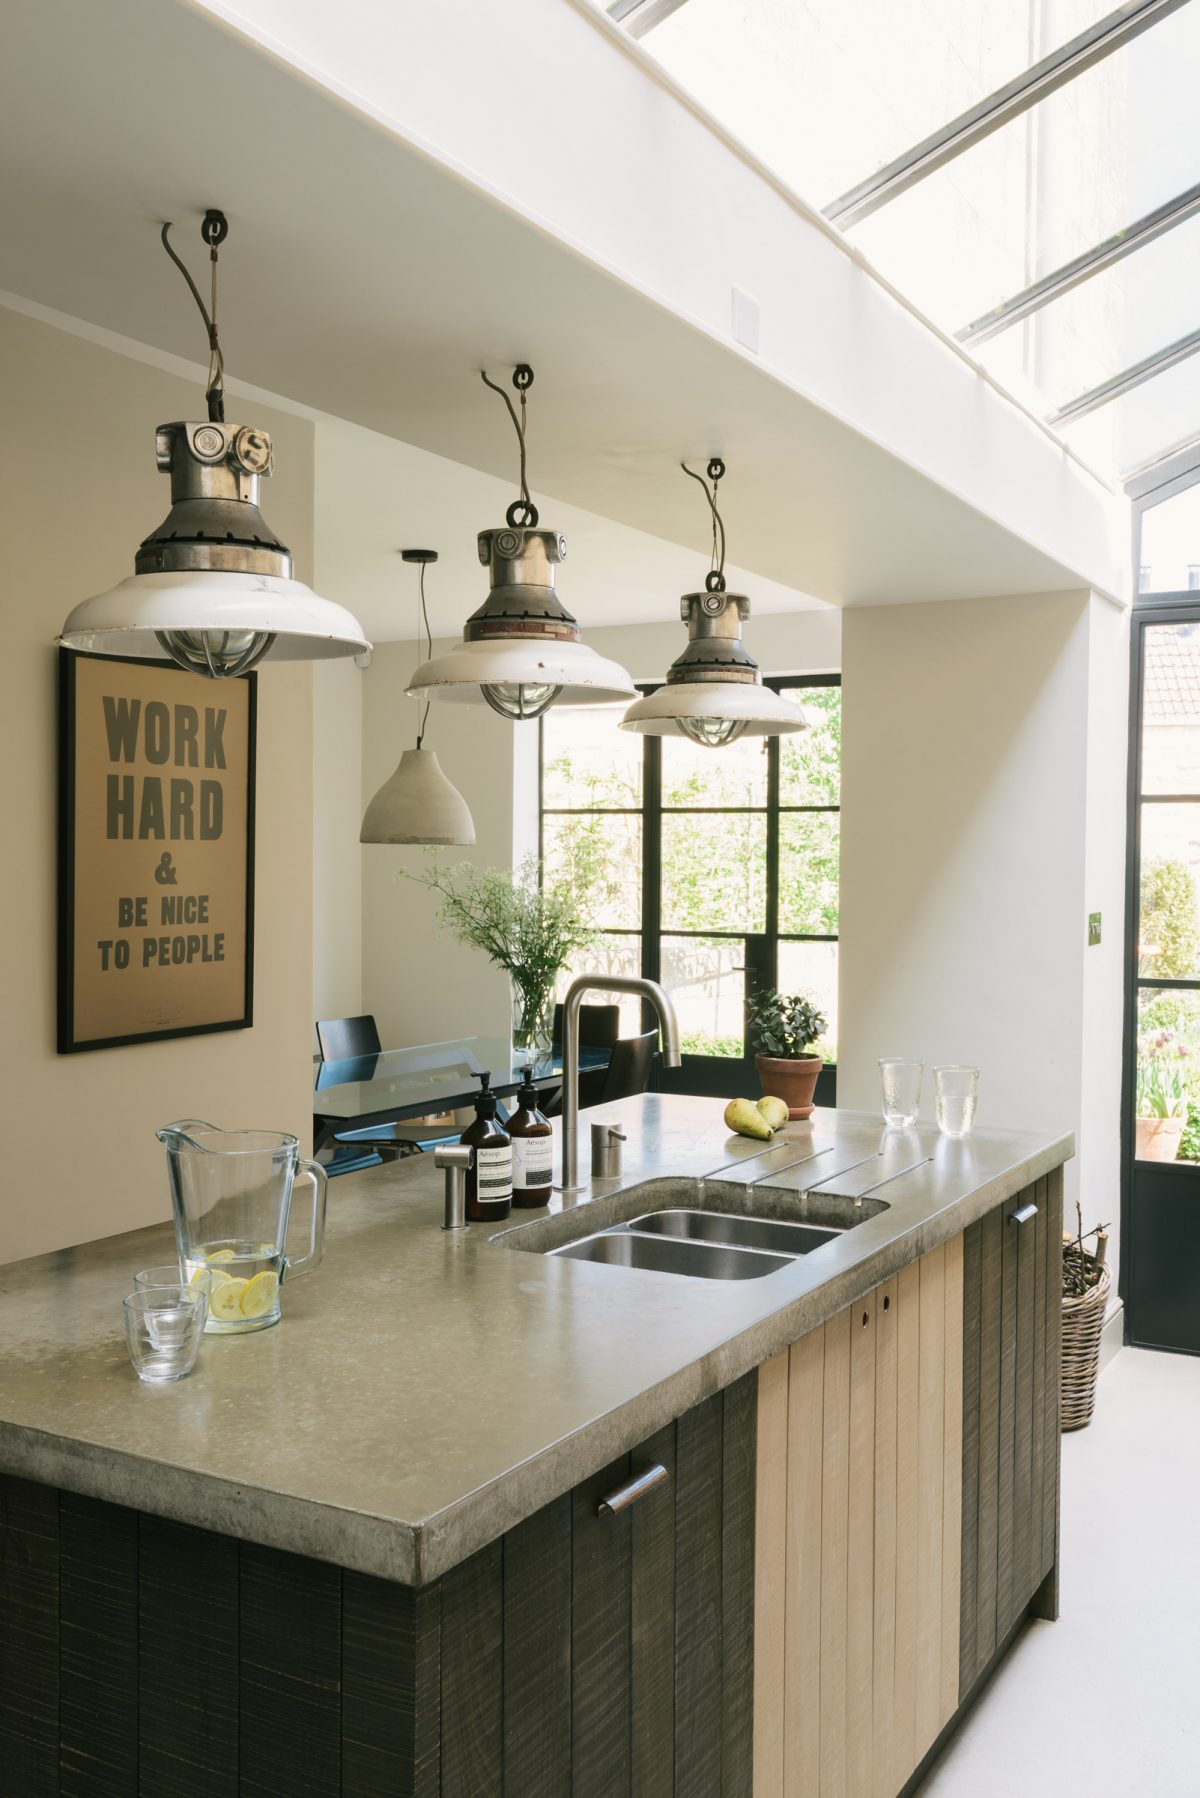 Three industrial pendant lights hang above the lovely island.